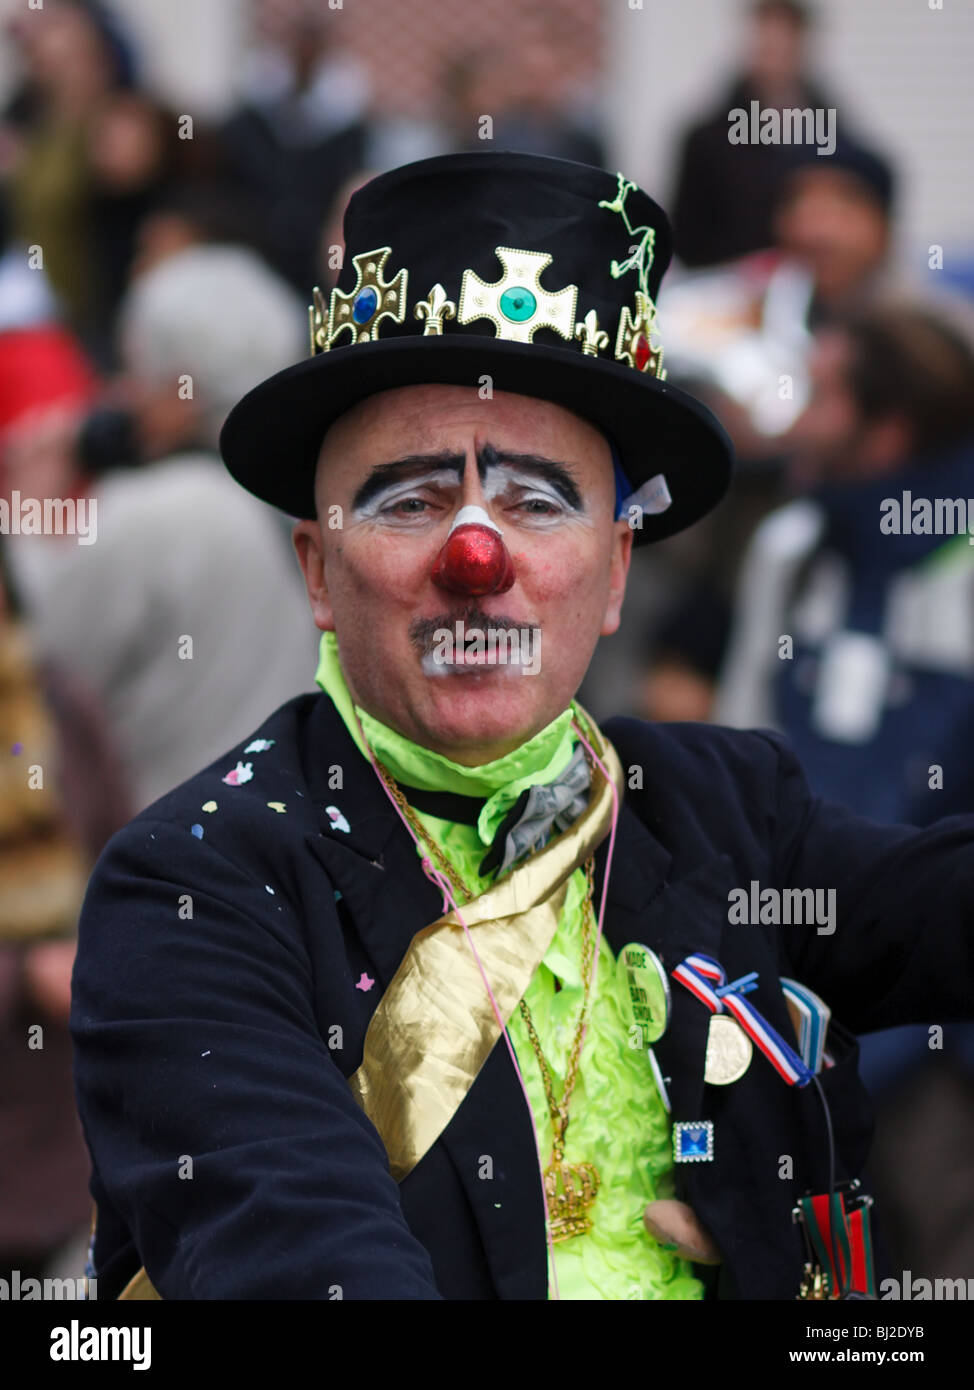 A man in a clown costume performing at the carnival parade in the streets of Paris, France - Stock Image